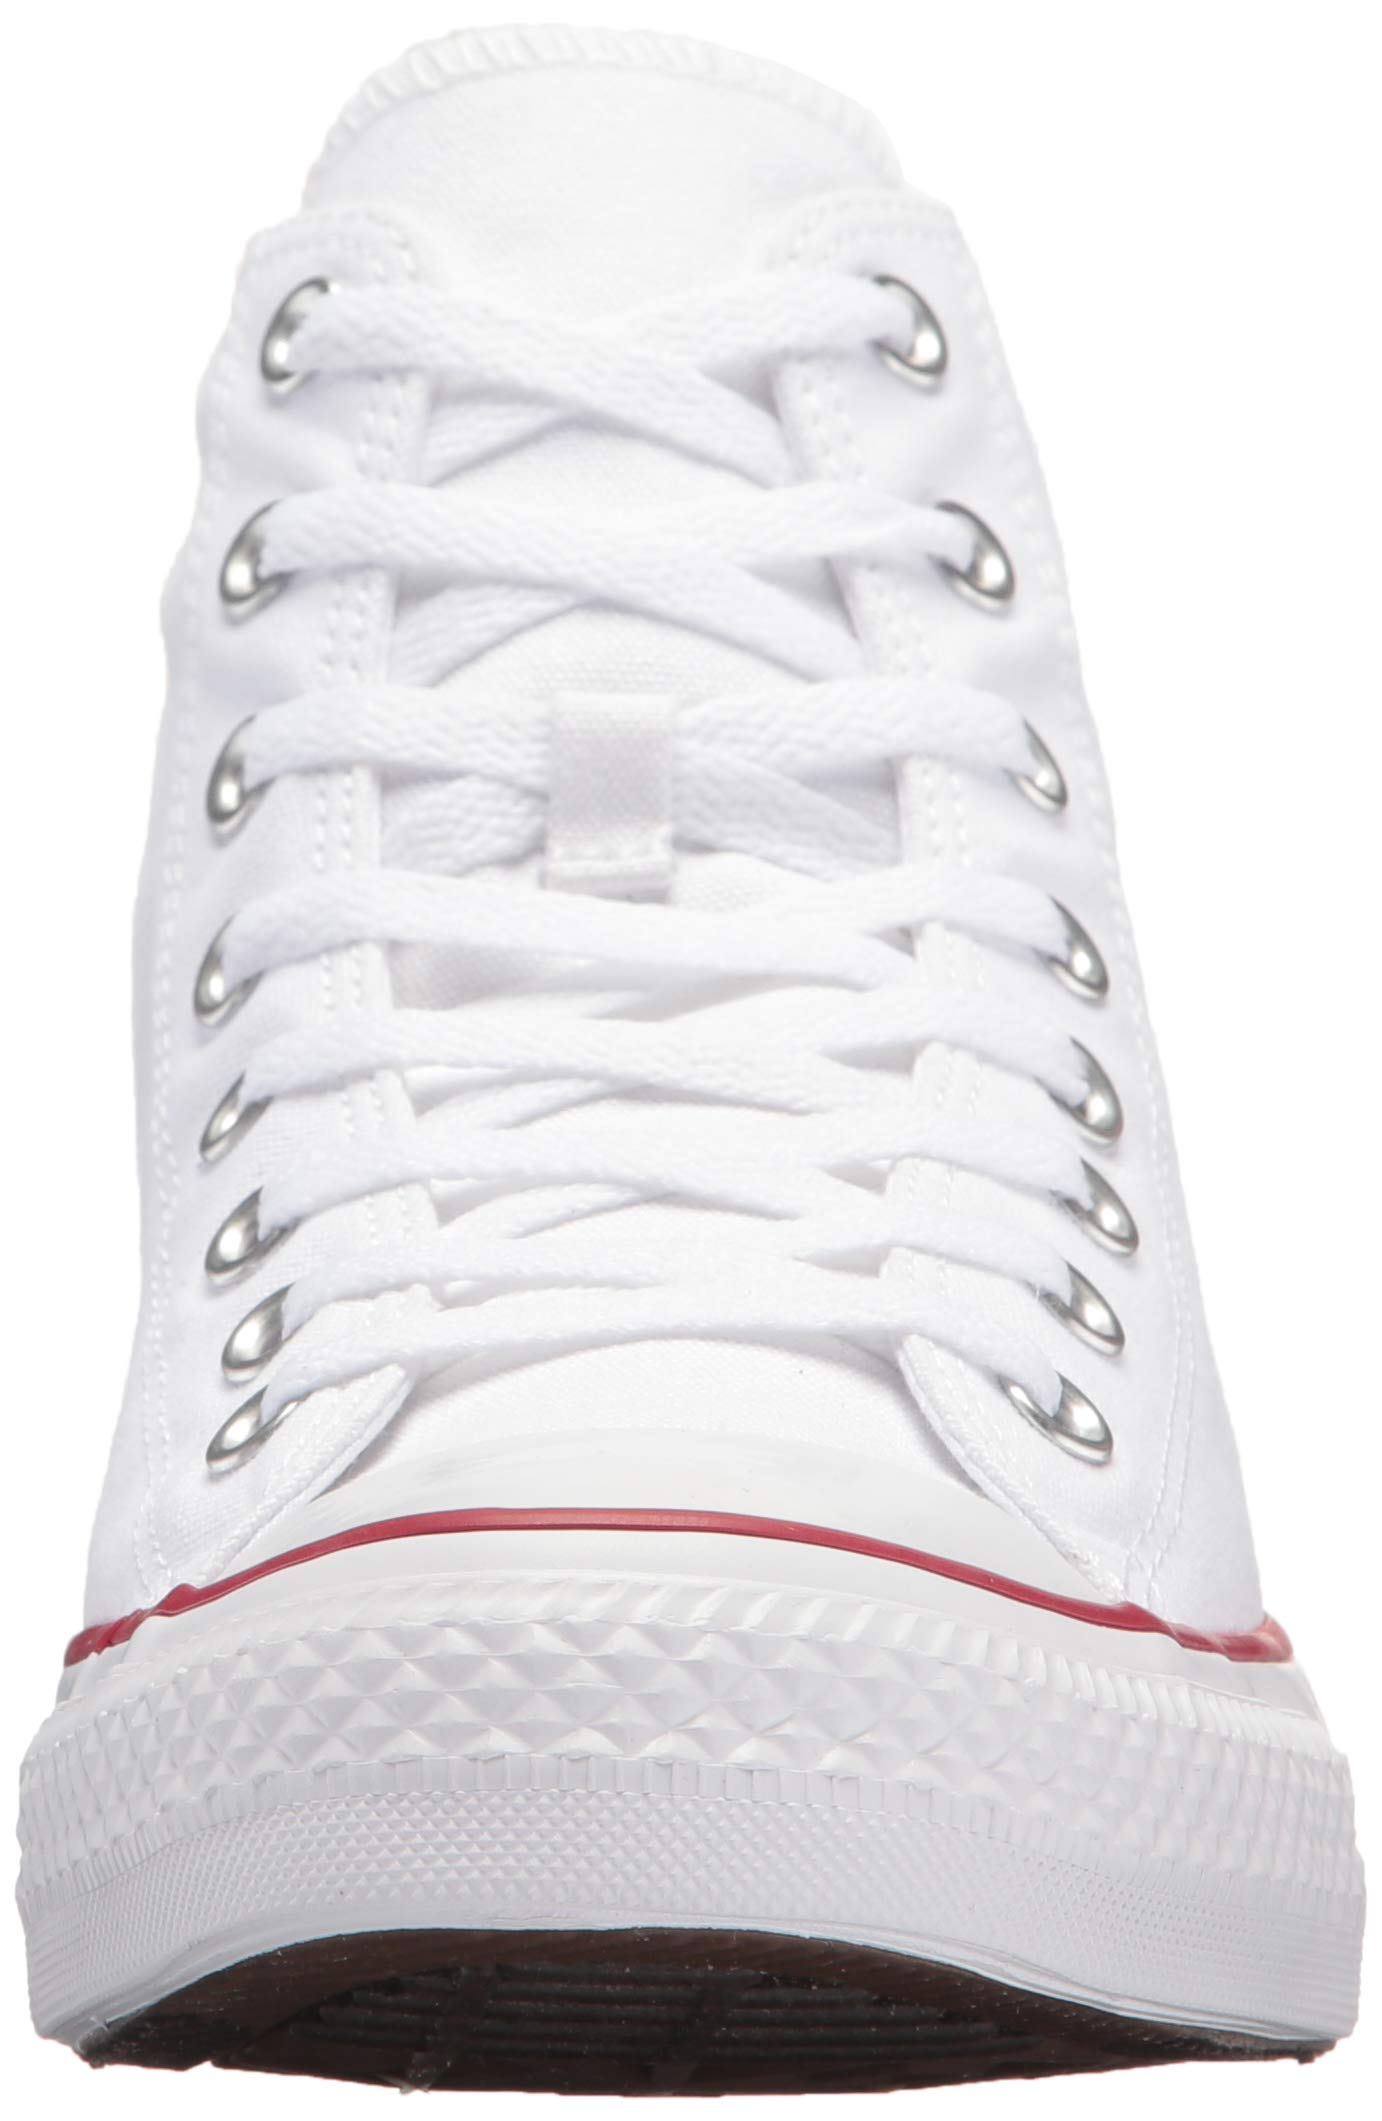 e1fadc3ceaccec Converse Clothing   Apparel Chuck Taylor All Star Canvas High Top Sneaker